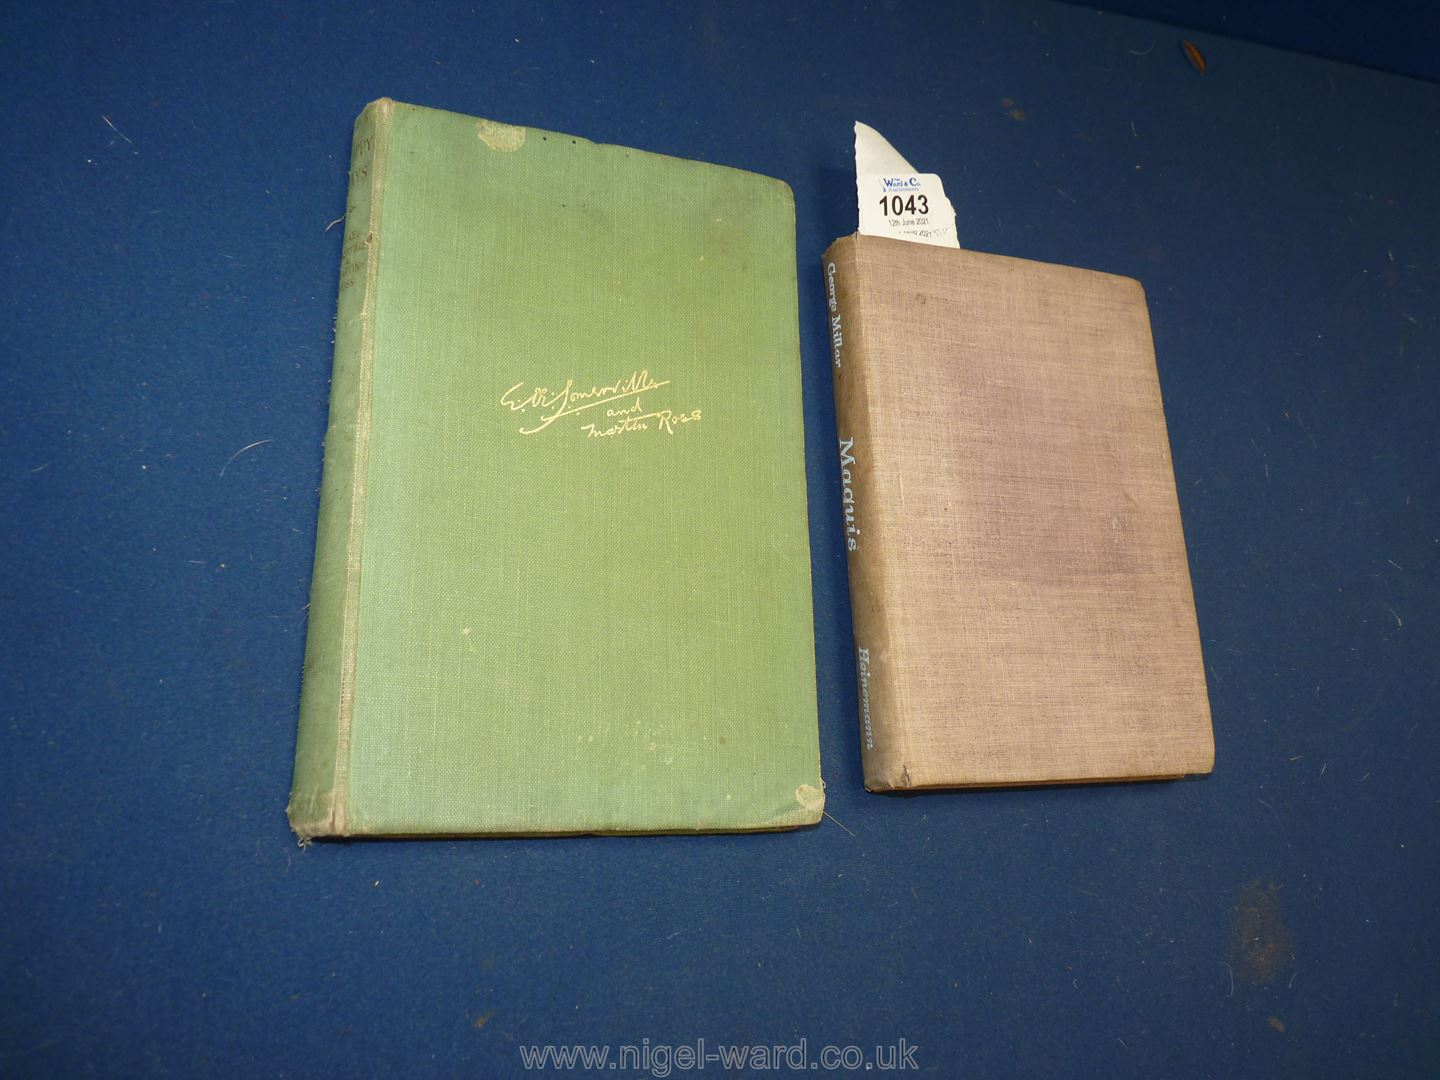 Two 1940's First Editions: 'Maquis' by George Millar pub 1945 by William Heinmann; - Image 7 of 7